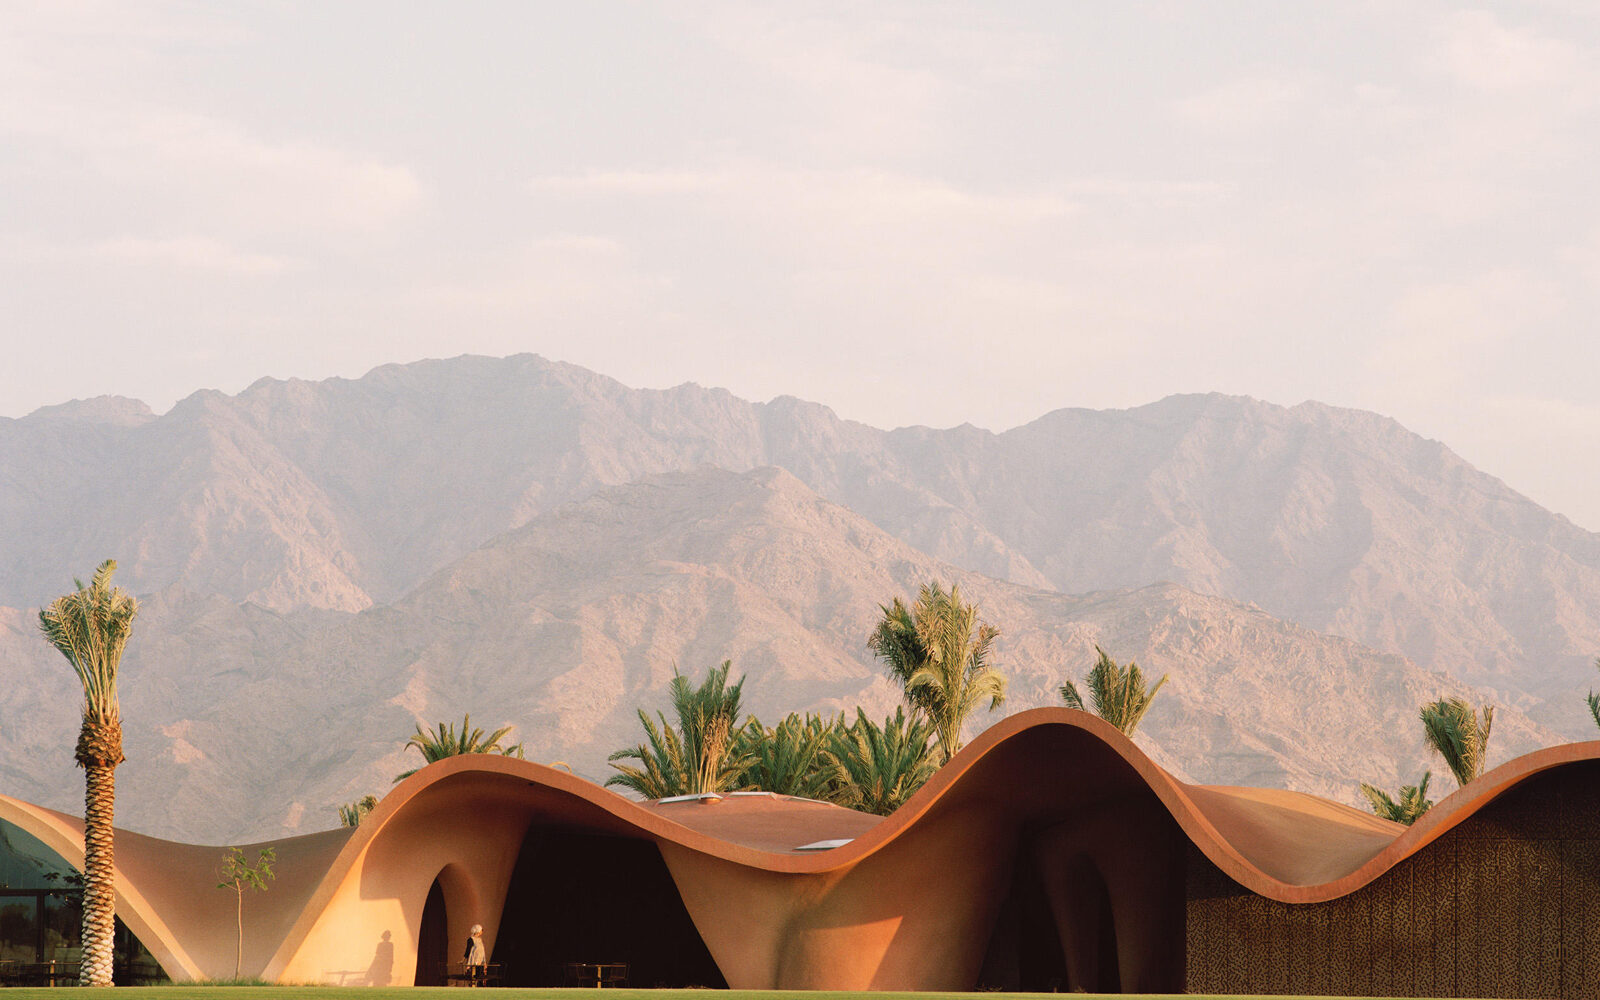 Ayla Golf Club Architecture inspired by sweeping red sand dunes